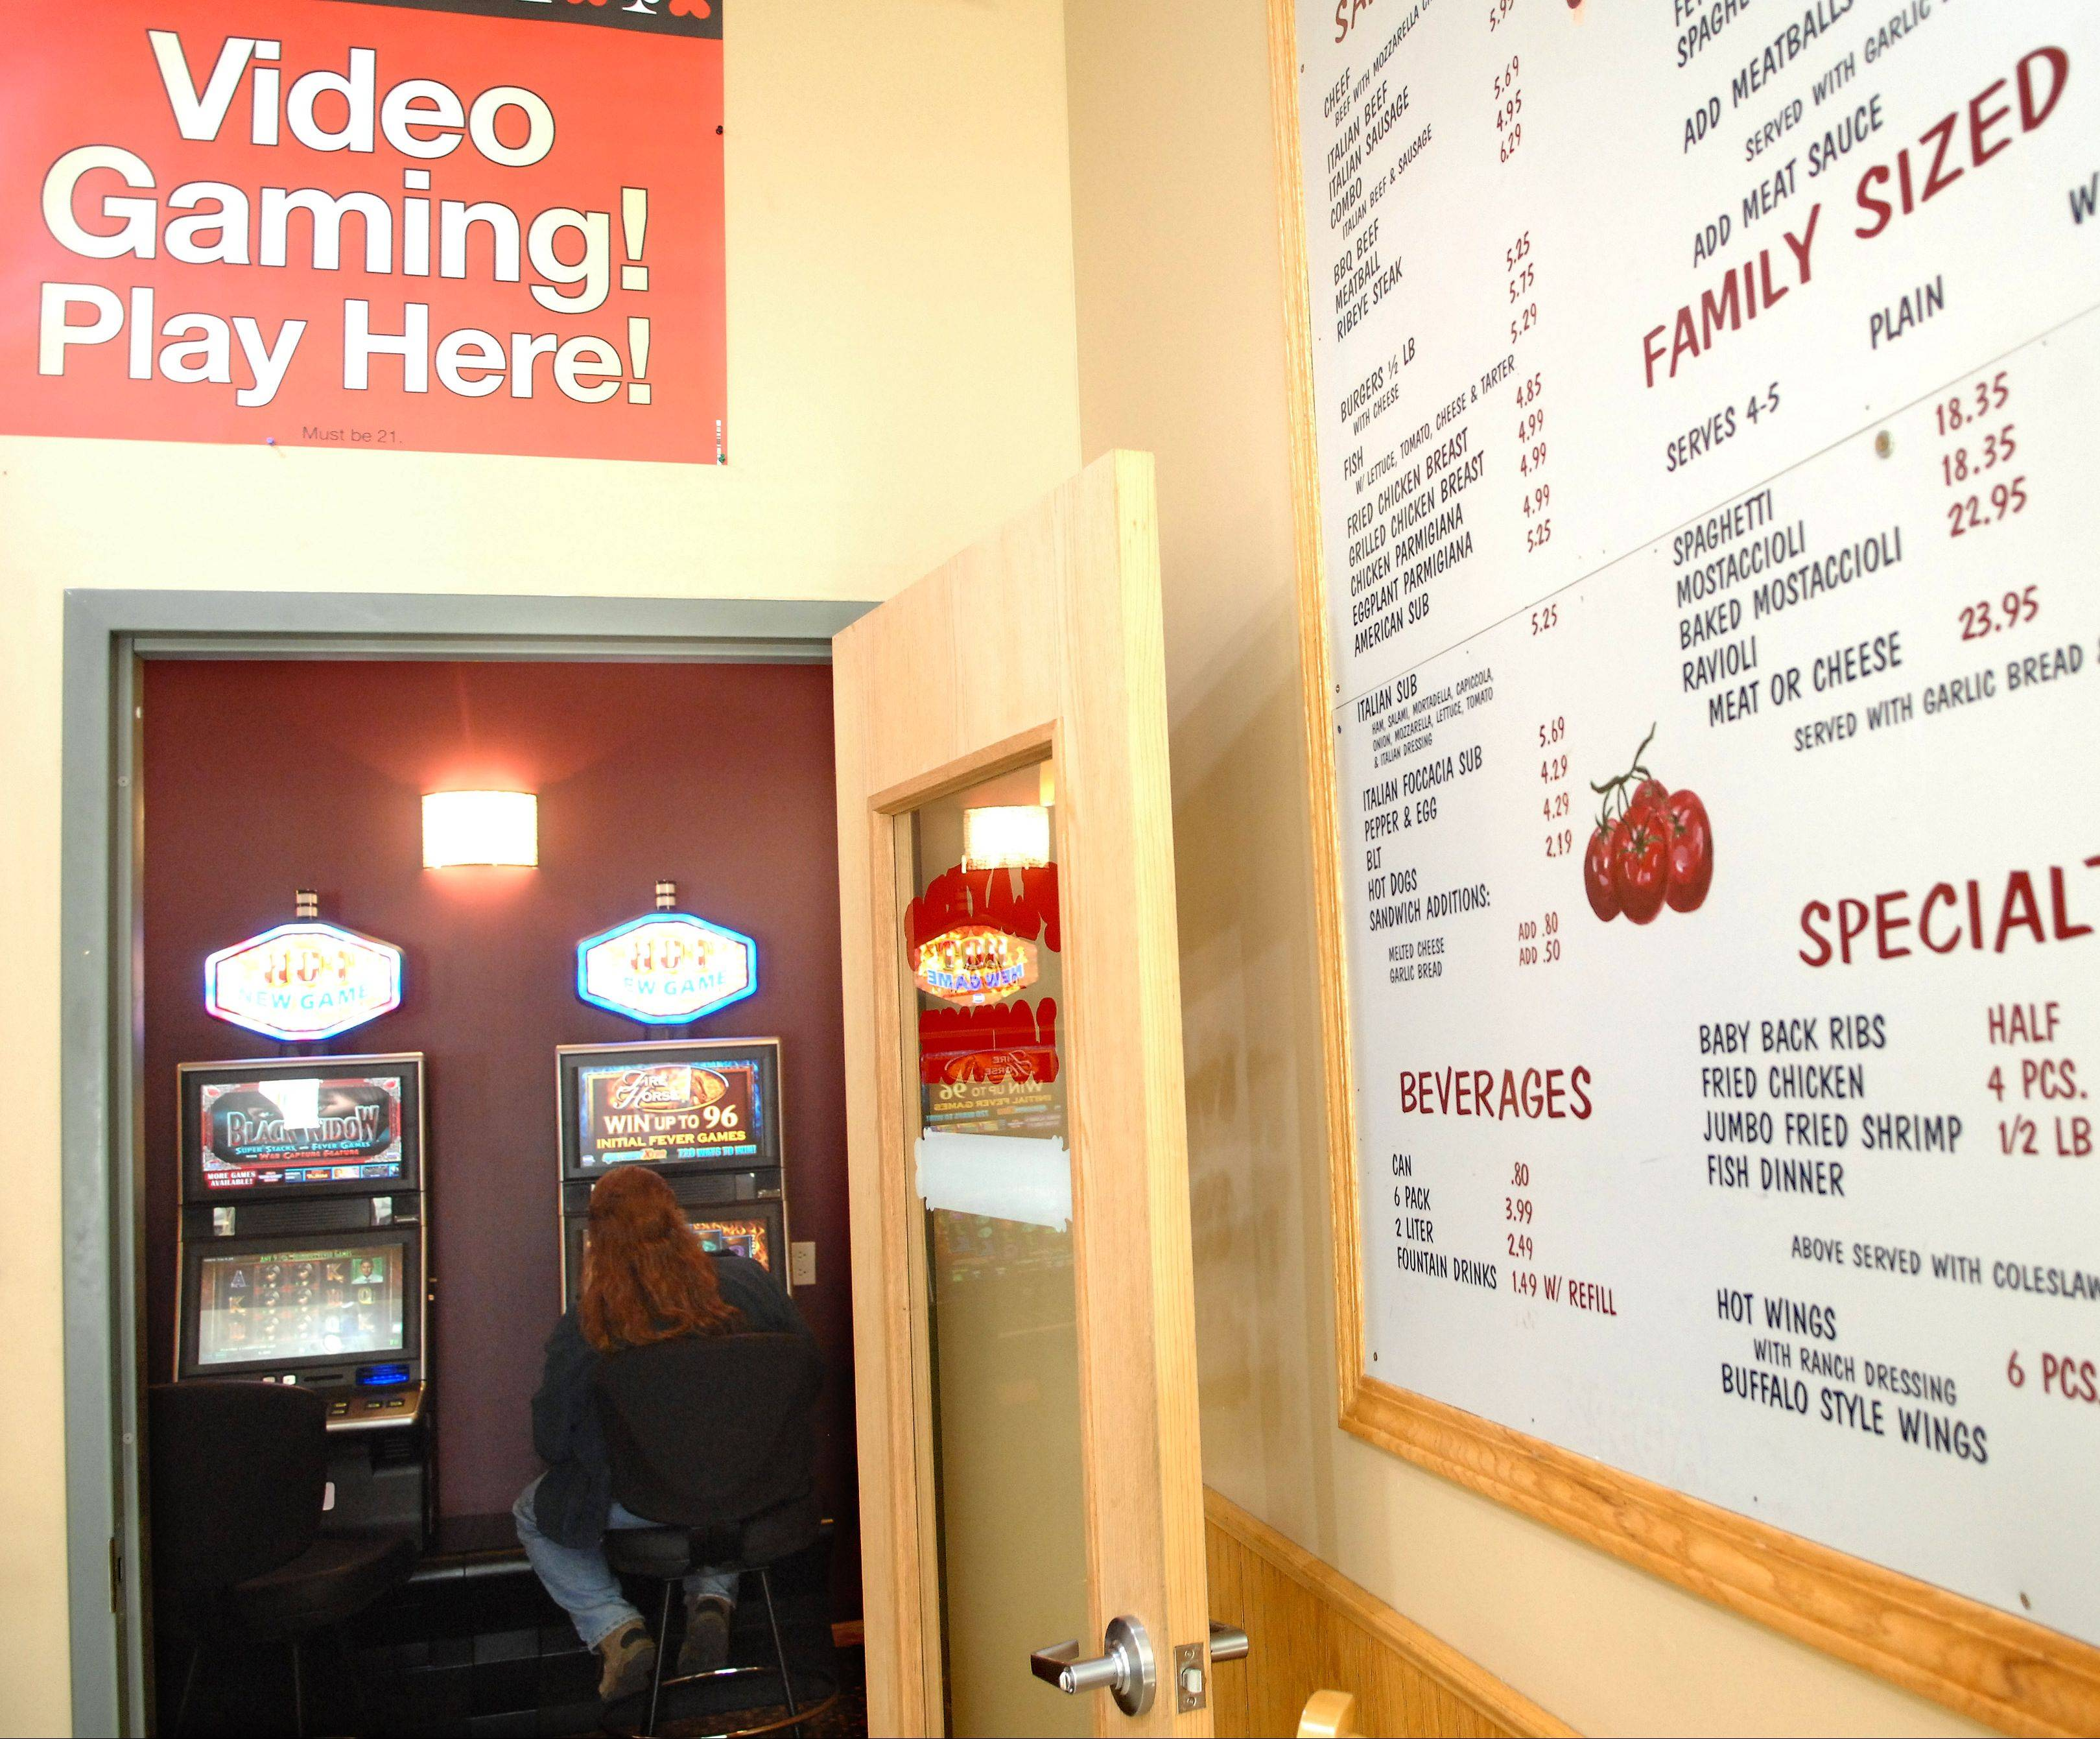 After a slow start, video gambling growing fast